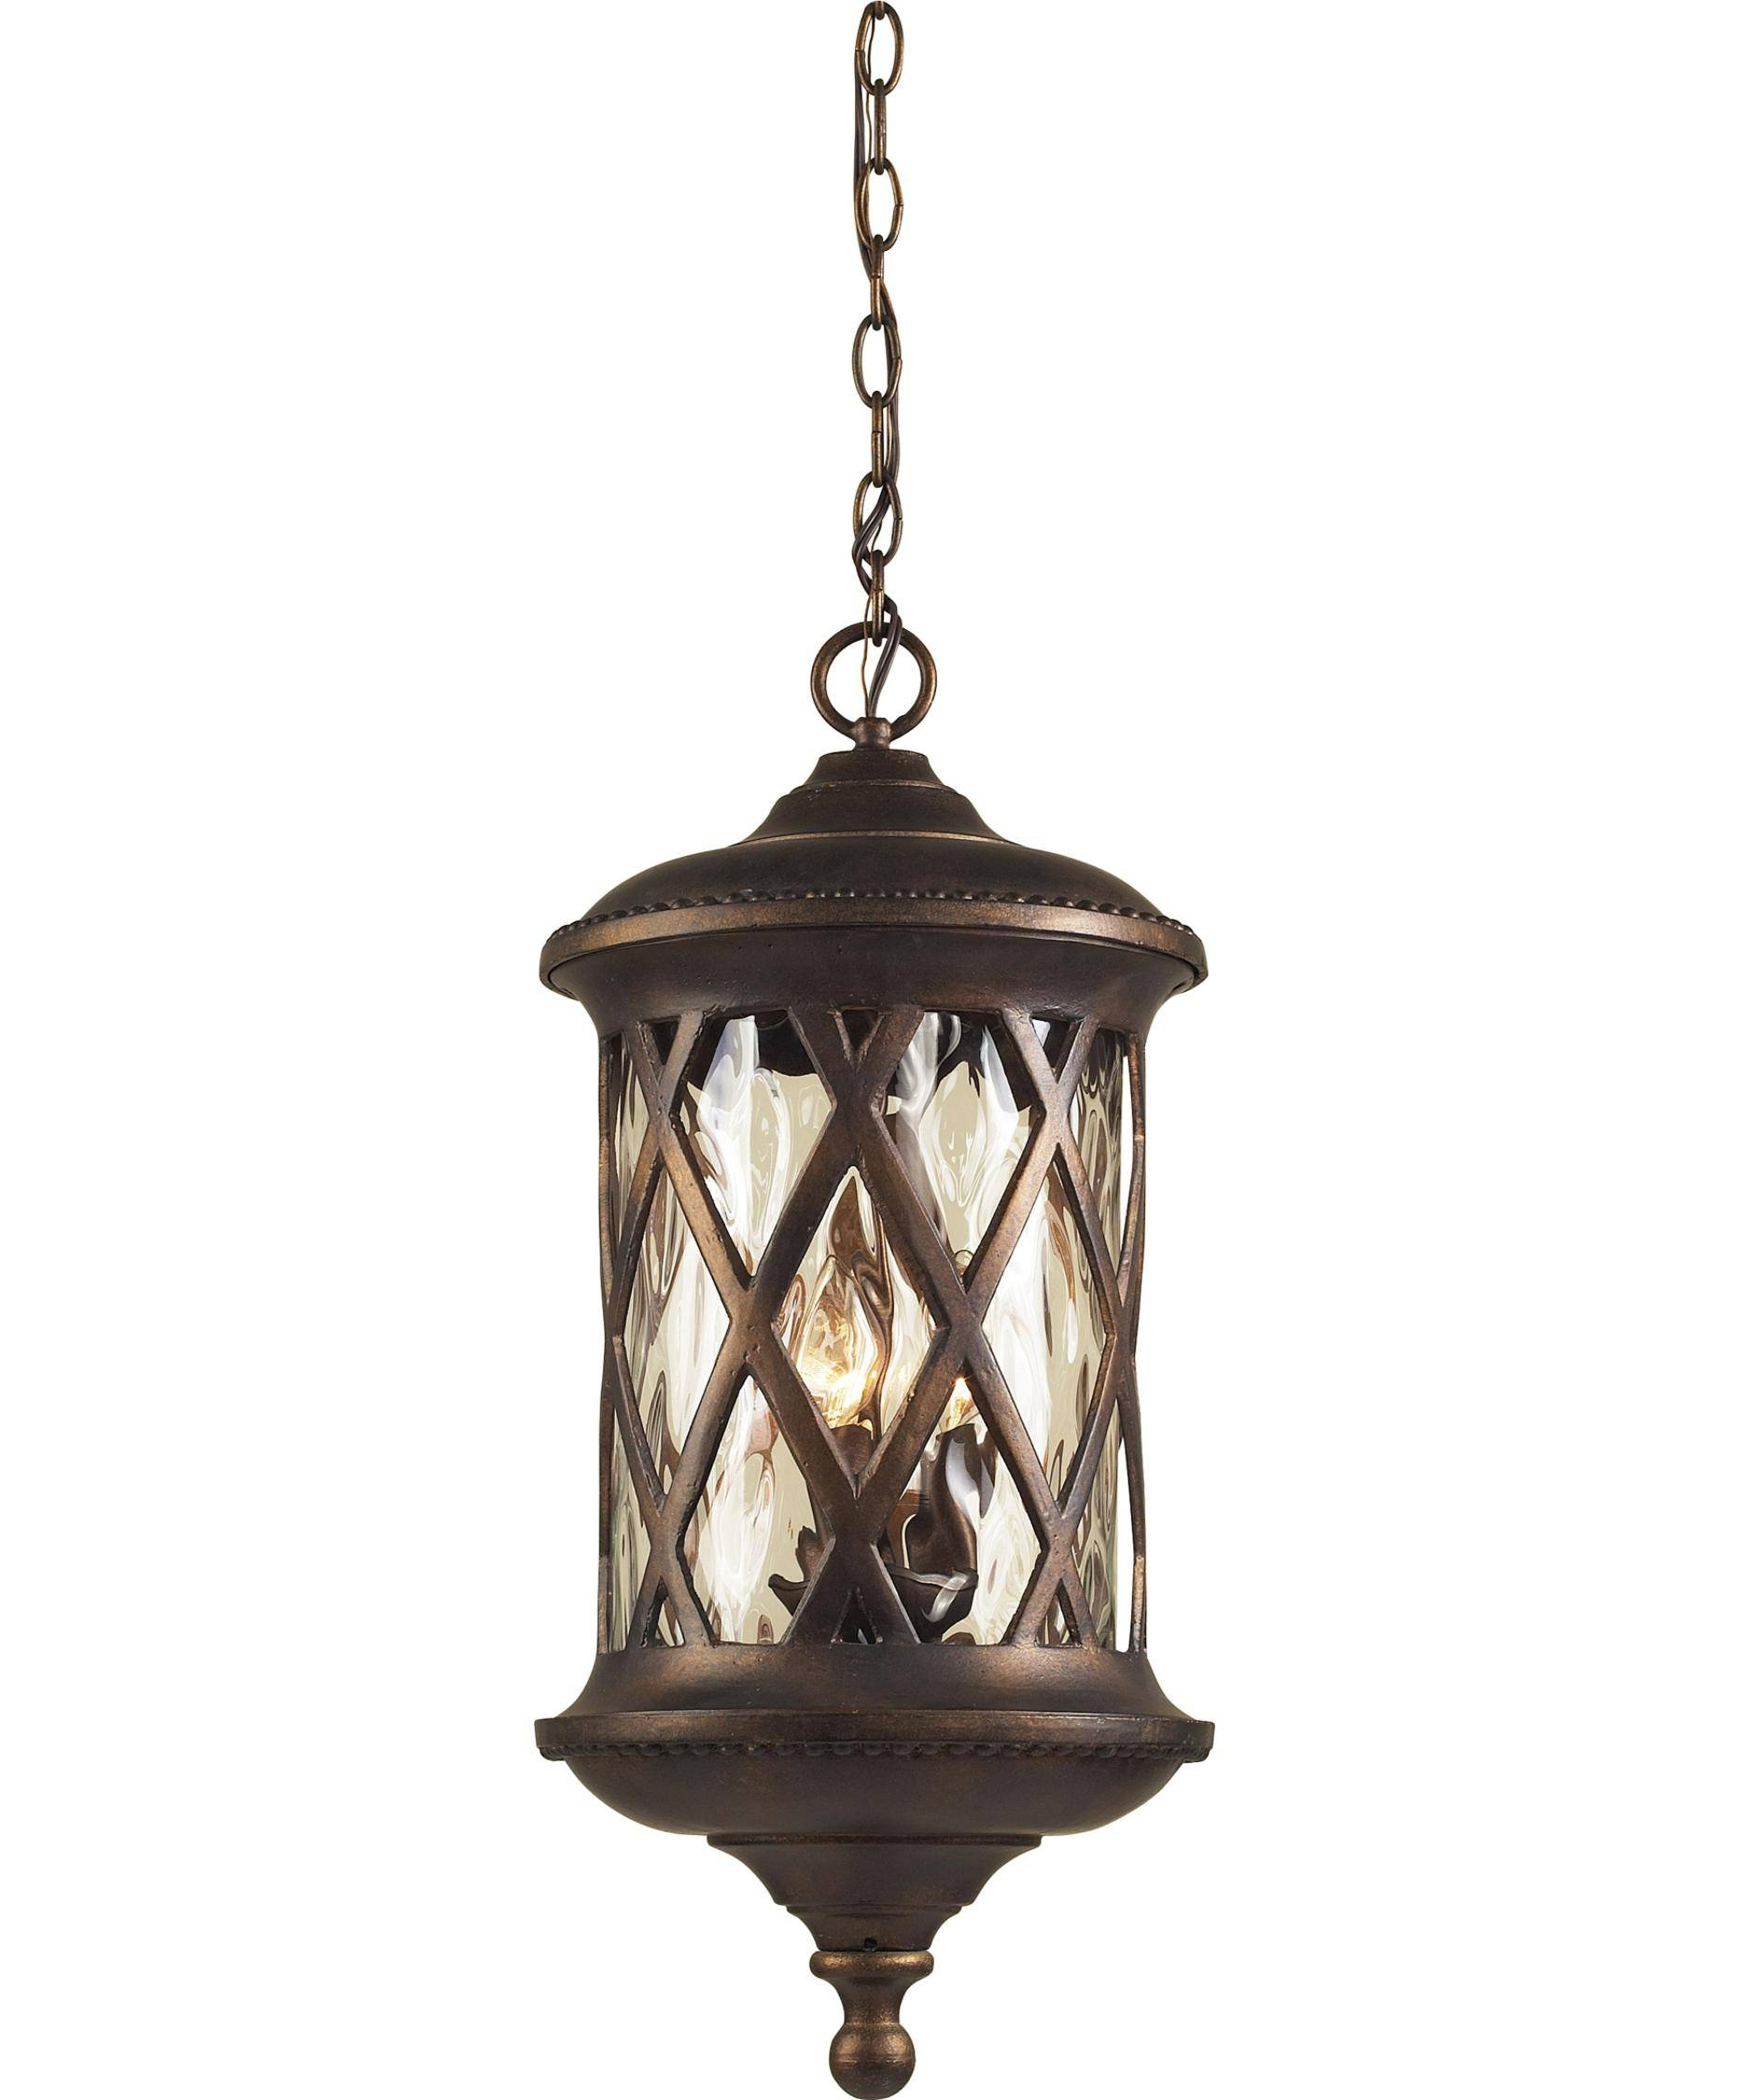 Elk Lighting 42033-3 Barrington Gate 11 Inch Wide 3 Light Outdoor intended for Outdoor Pendant Lighting (Image 2 of 15)